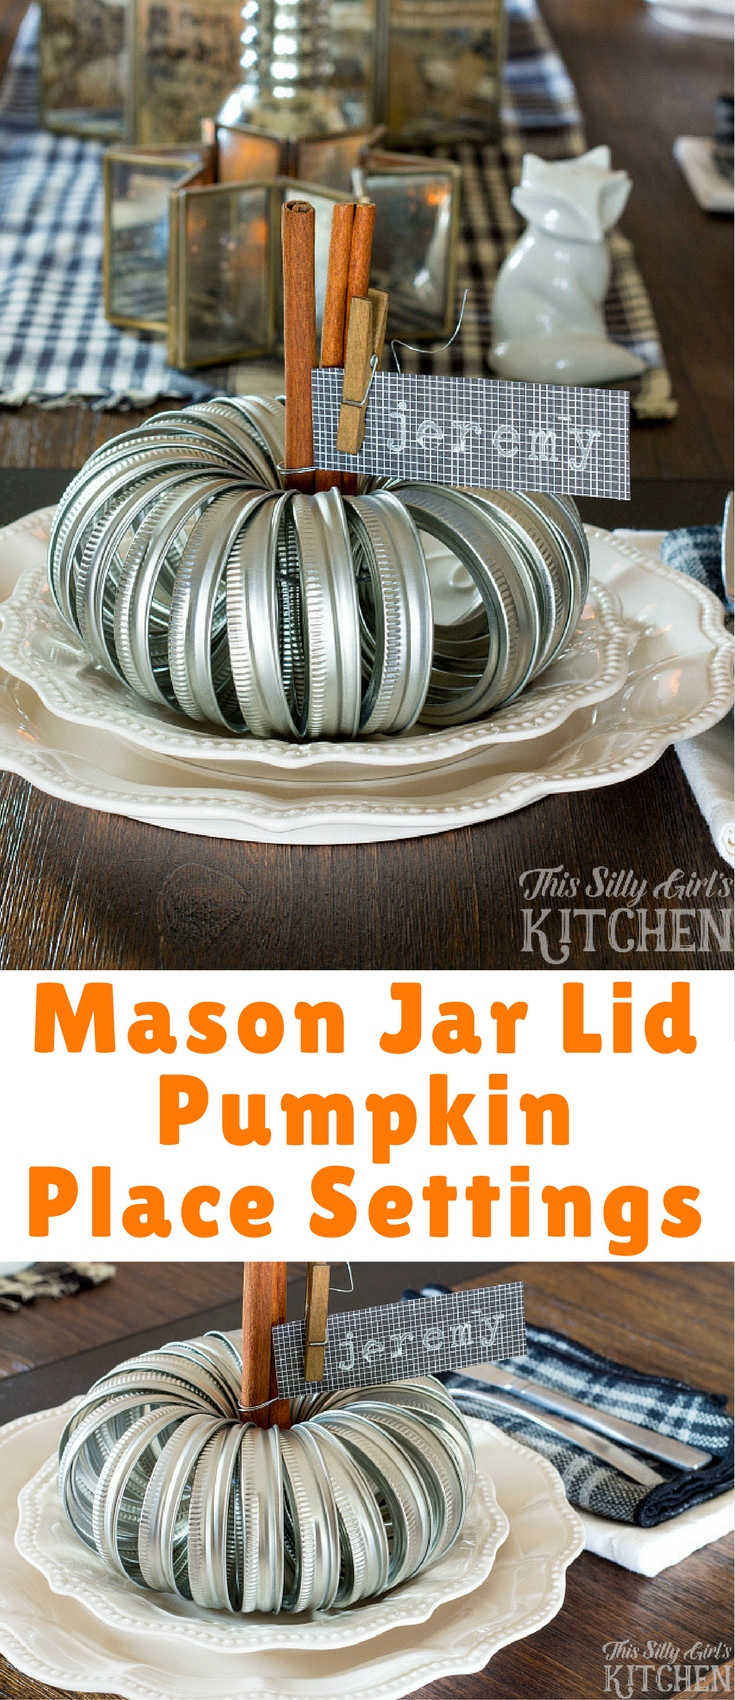 Mason Jar Lid Pumpkin Place Settings, a super cute and crafty place setting for your Thanksgiving tablescape!